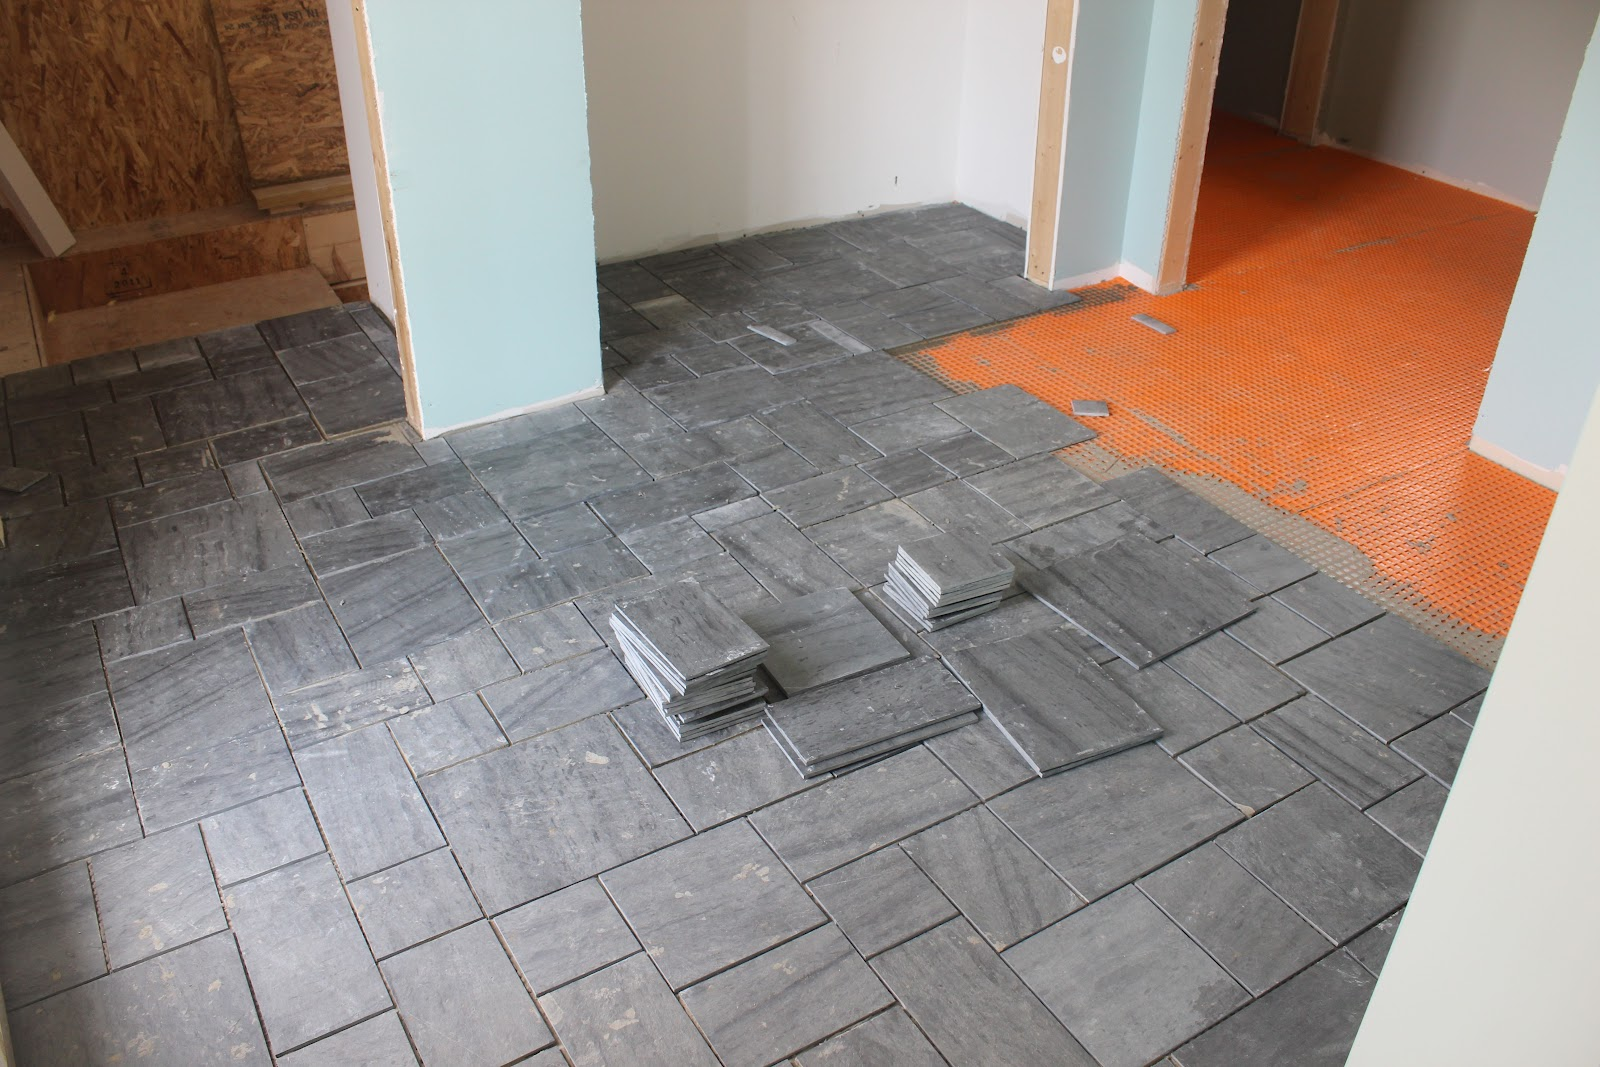 Avente tile talk installing a slate tile floor as you go along a line develops and then you have to choose what tile pieces to add to break it its very much like doing a puzzle but you are making it dailygadgetfo Choice Image